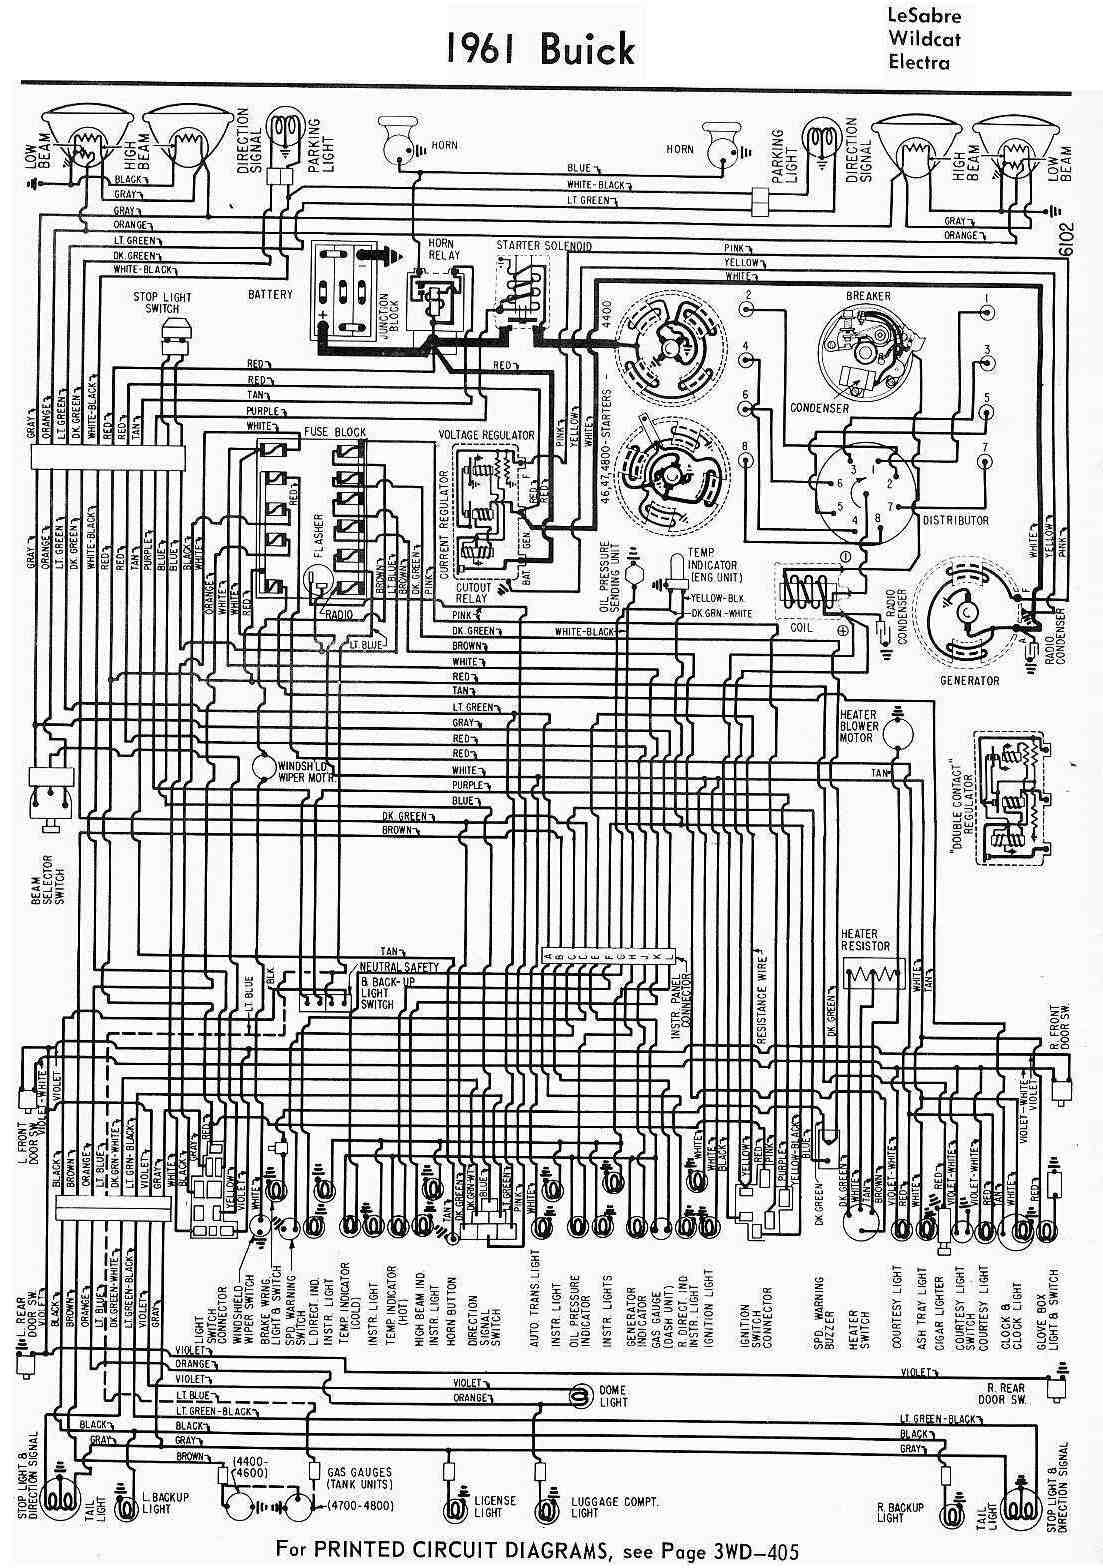 2011 on 1998 buick lesabre pcm pinout diagram